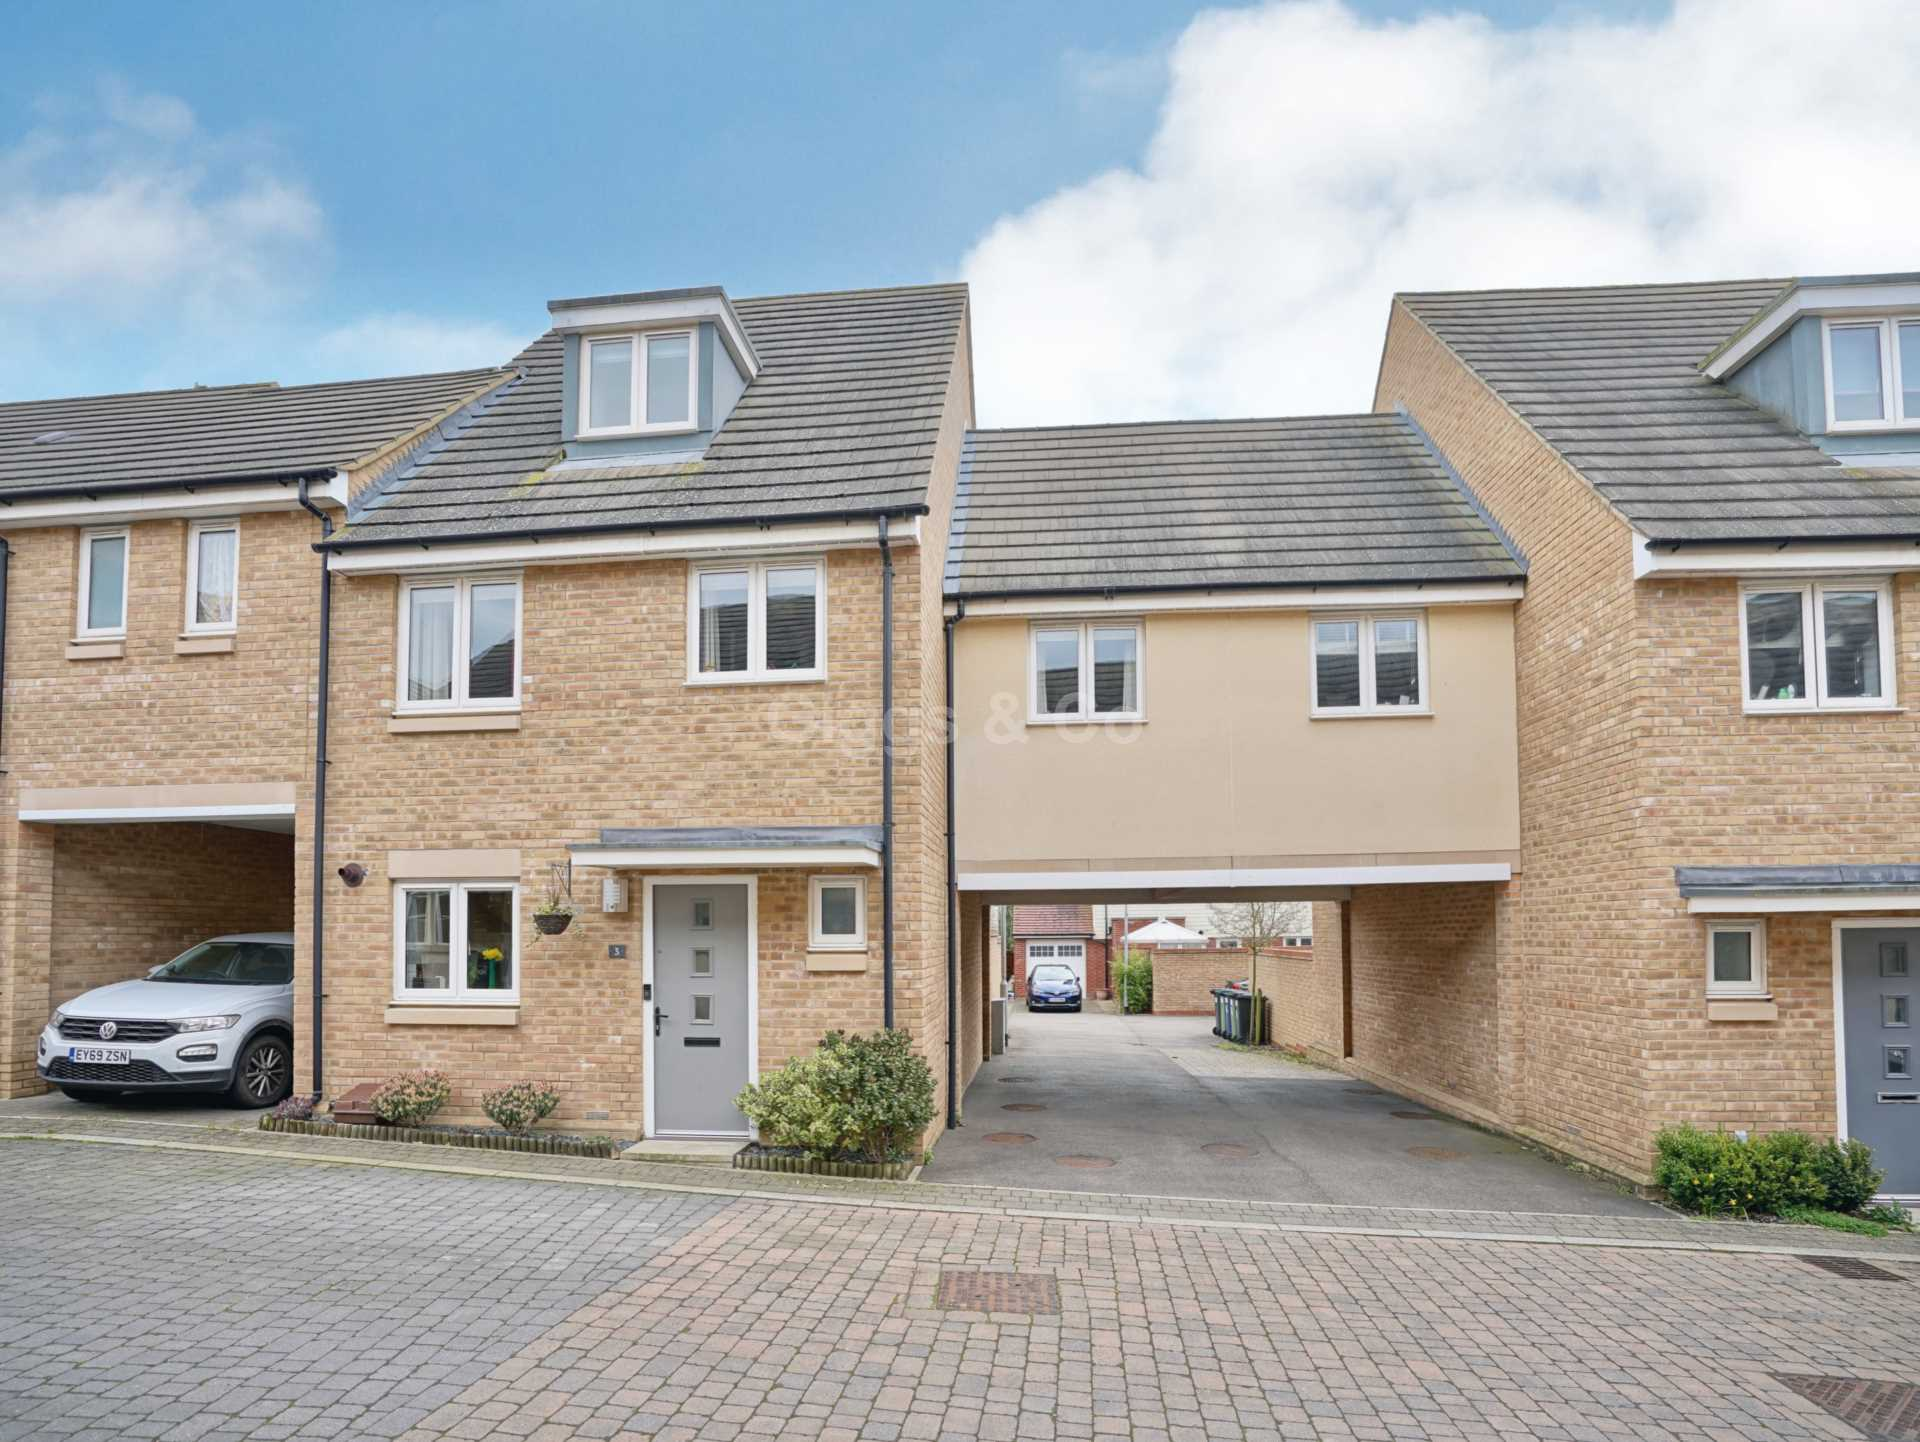 4 bed detached house to rent in Anderson Close, St Neots, PE19